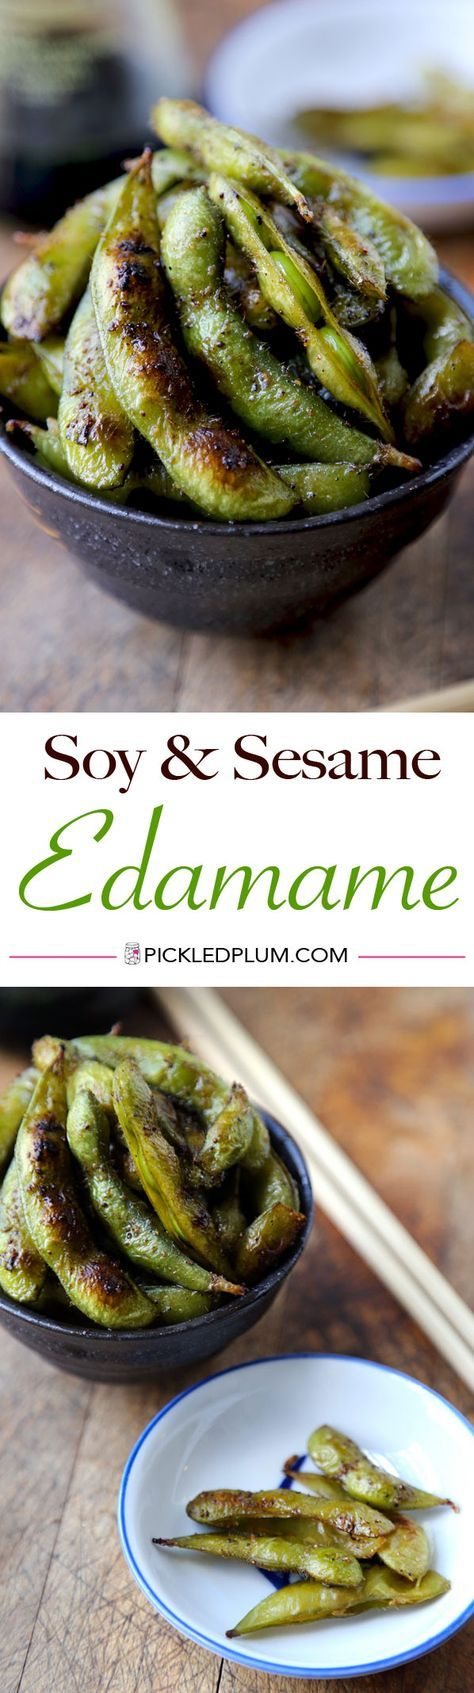 Healthy and Quick Recipe: Warm Soy and Sesame Edamame - the perfect late night snack! http://www.pickledplum.com/healthy-snack-edamame-recipe/